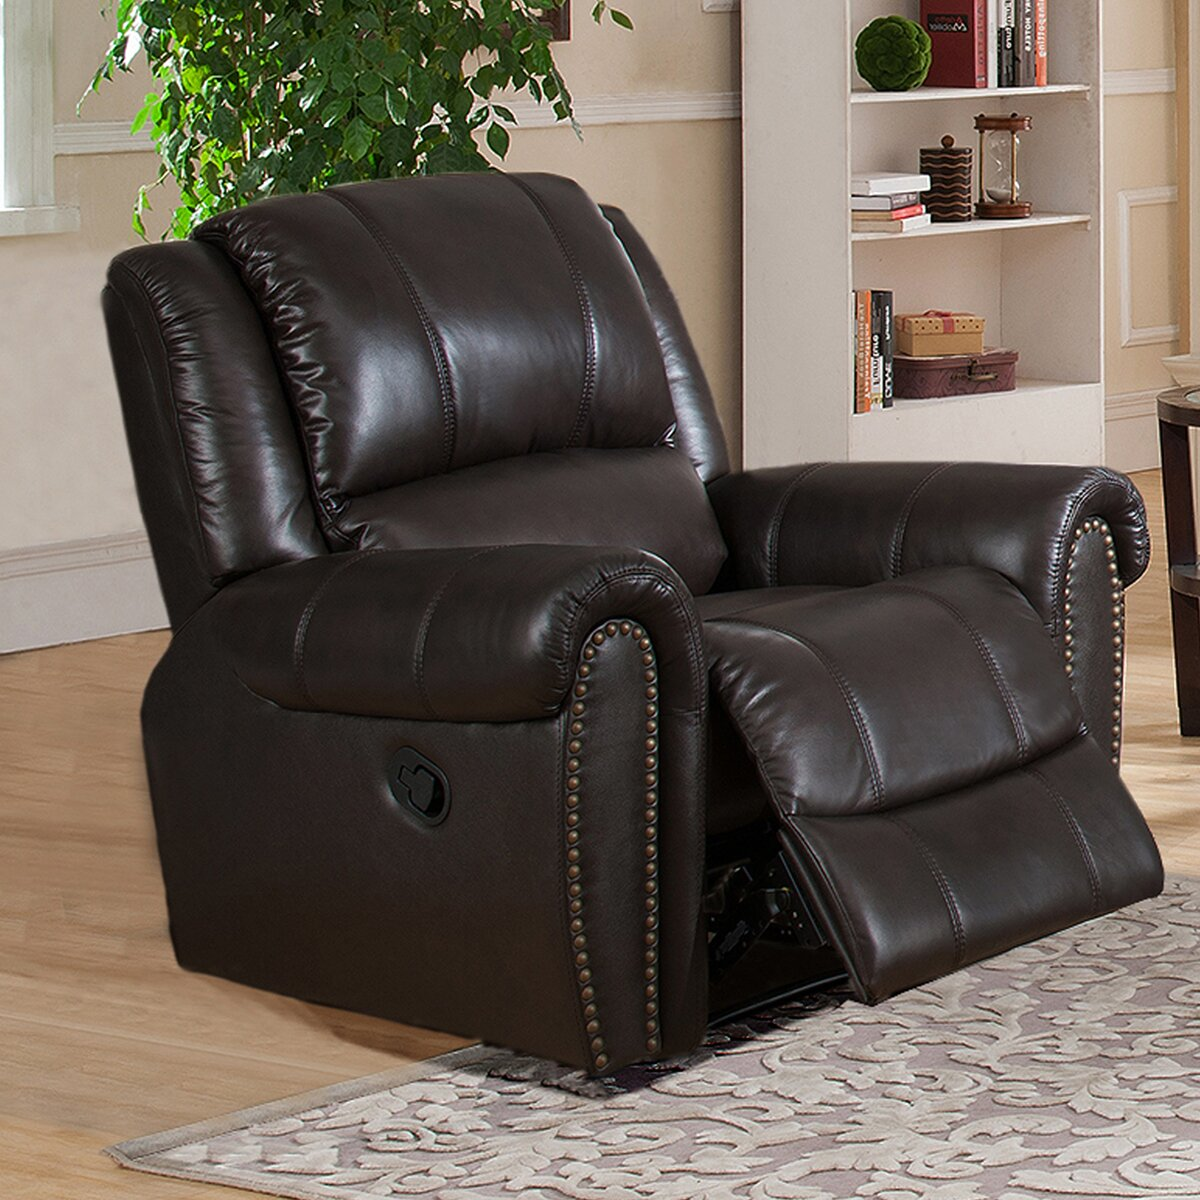 Amax charlotte 3 piece leather recliner living room set for Three piece leather living room set